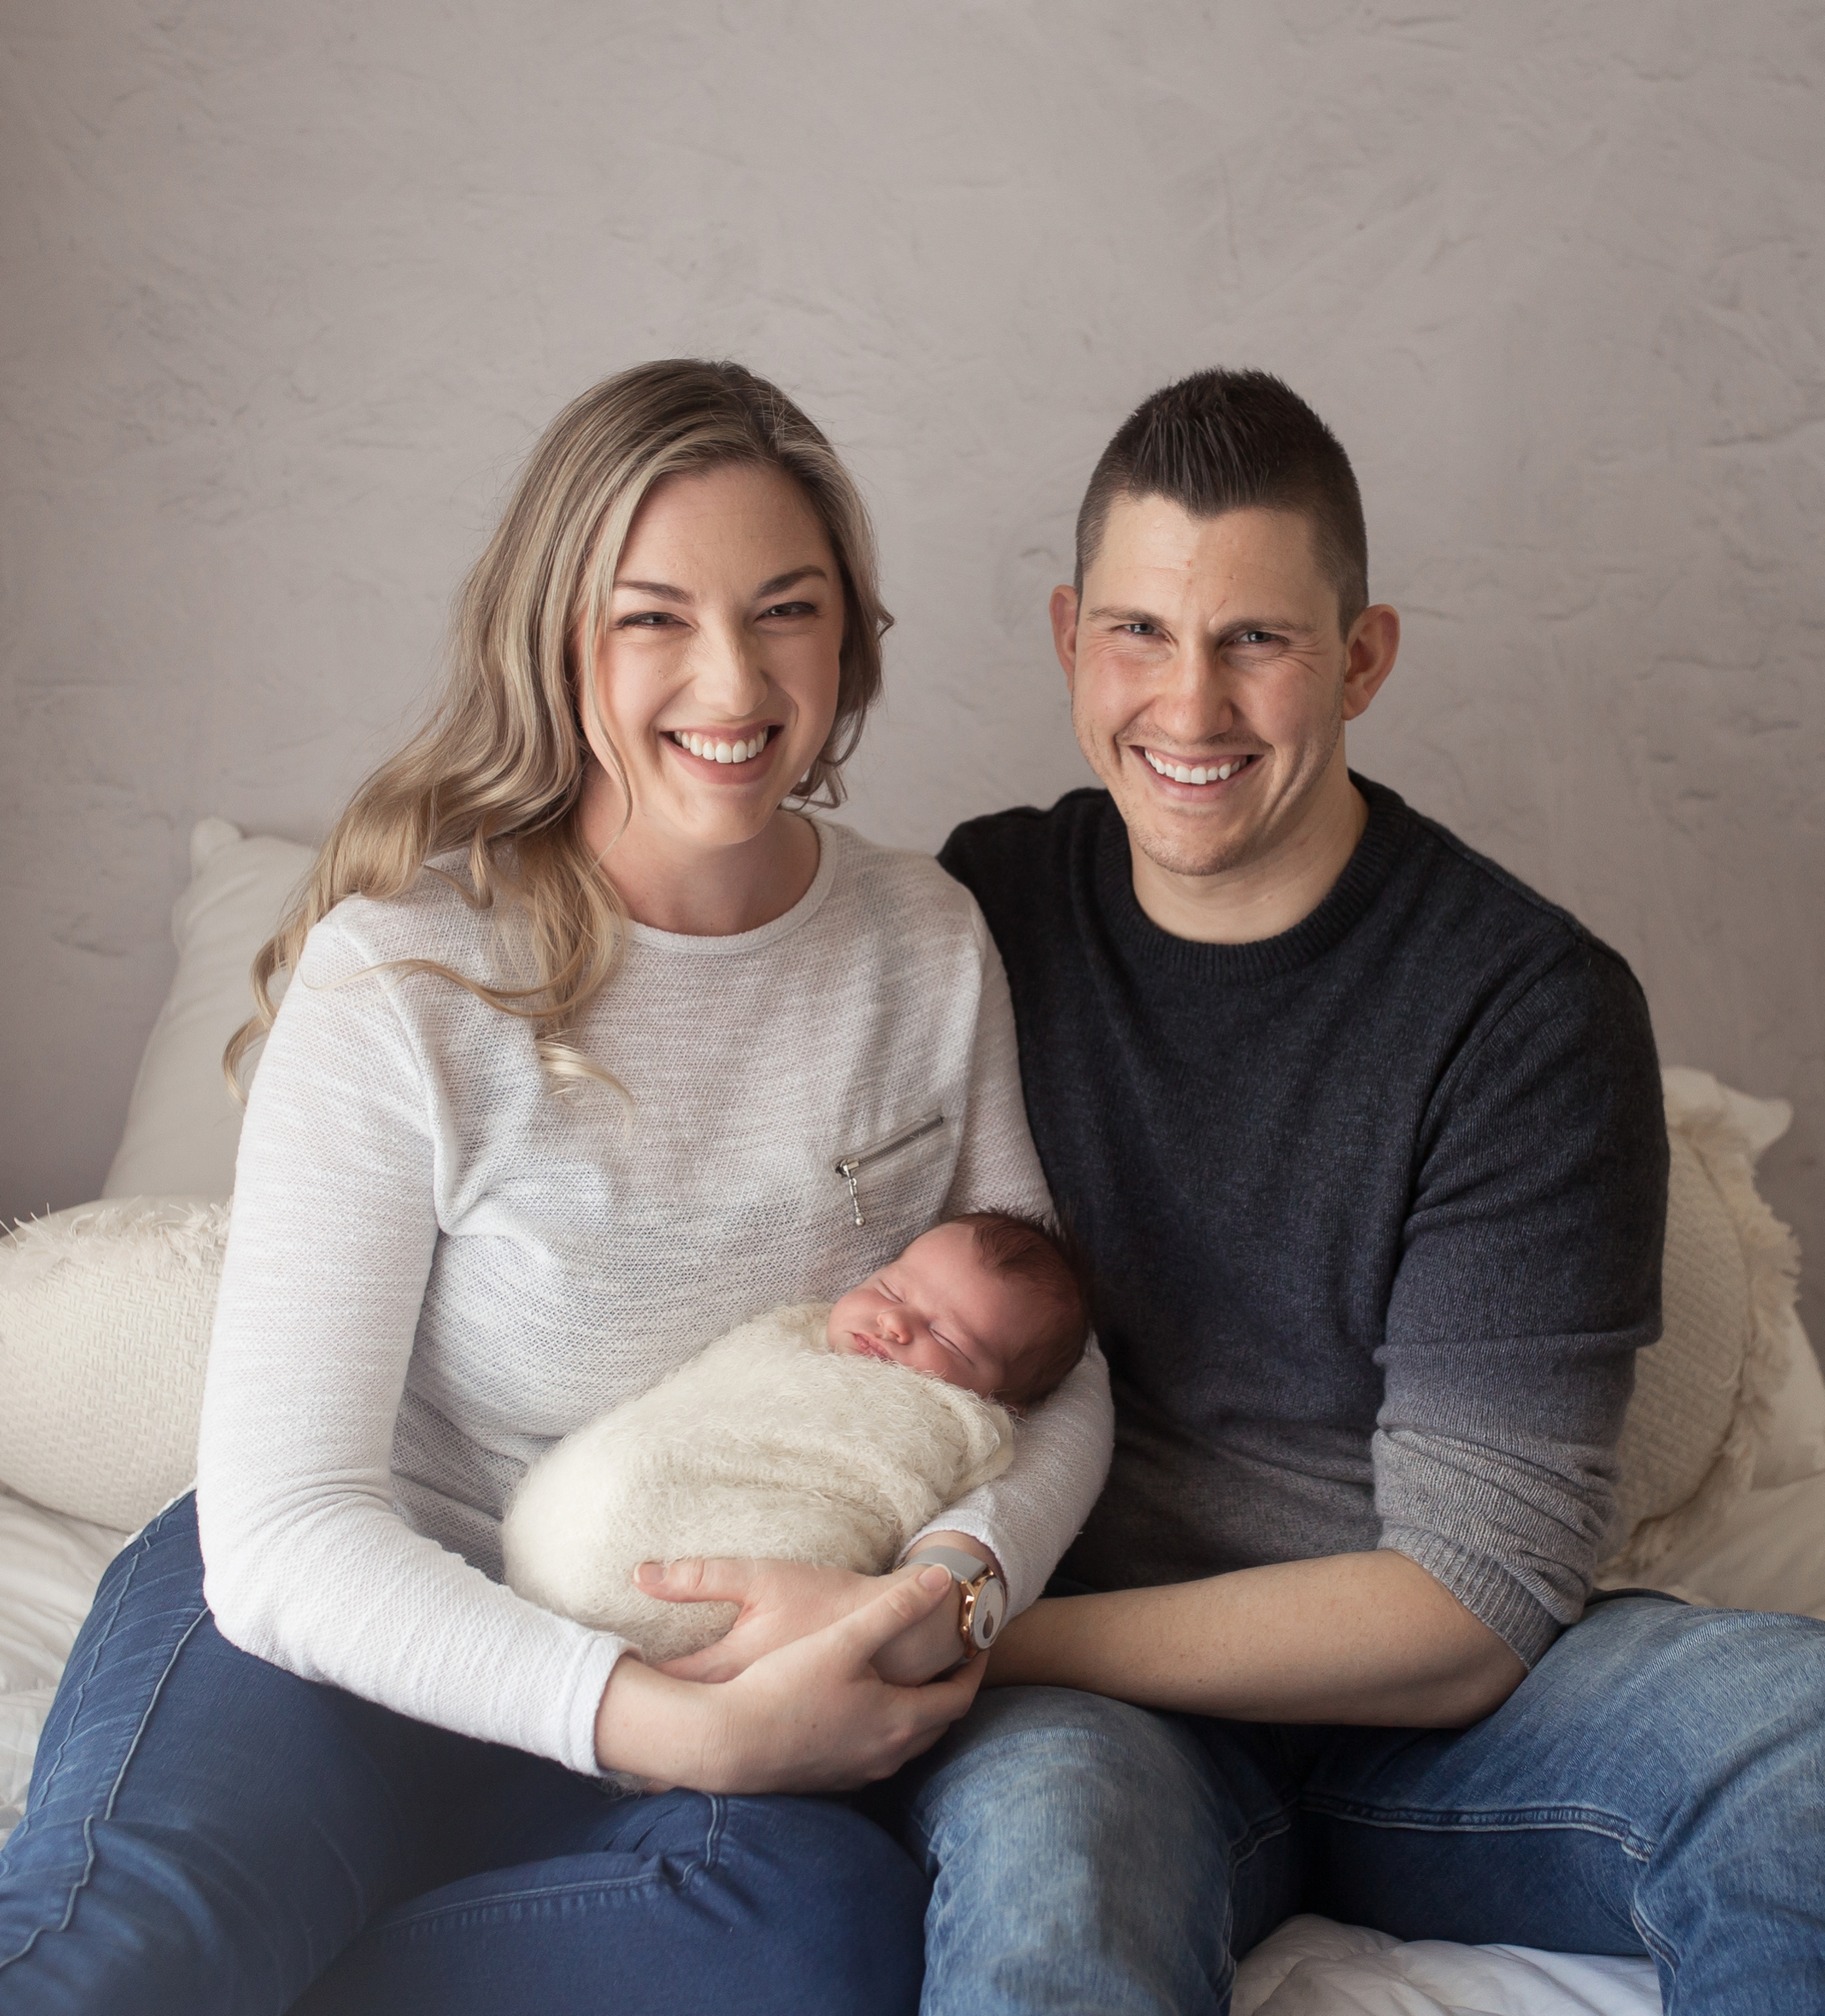 newborn Photos Geelong_1750.jpg